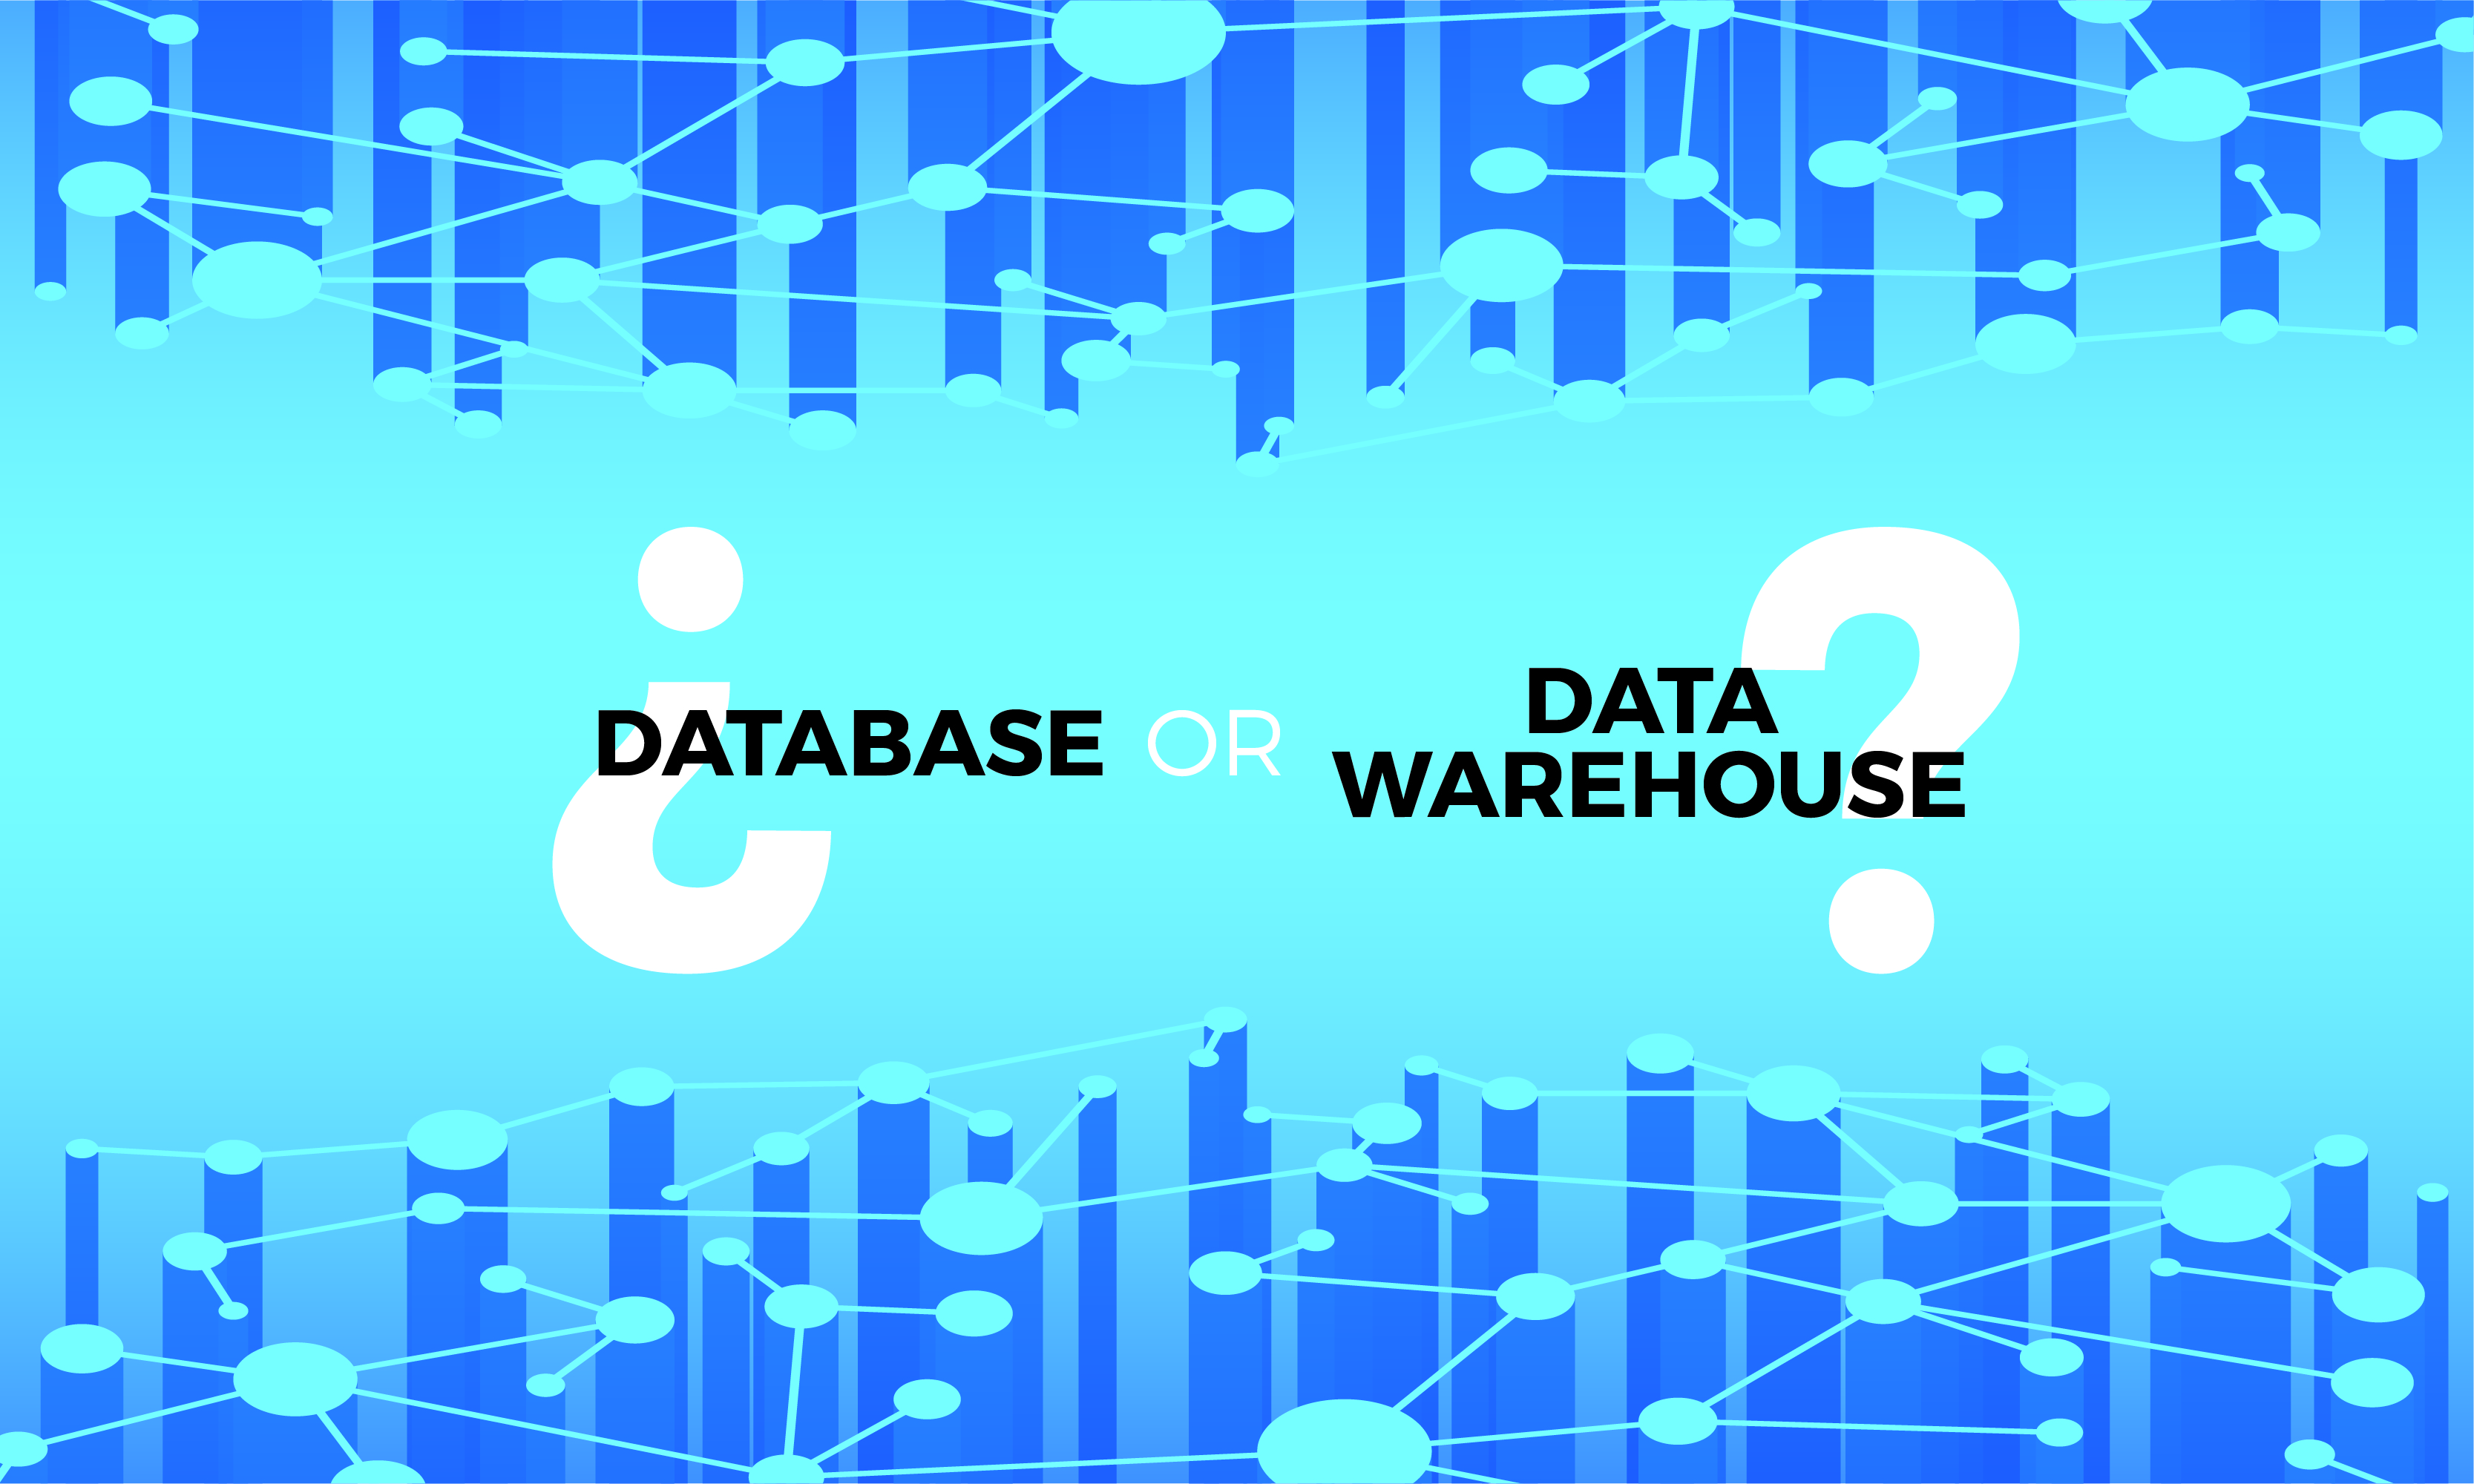 Database  datawarehouse